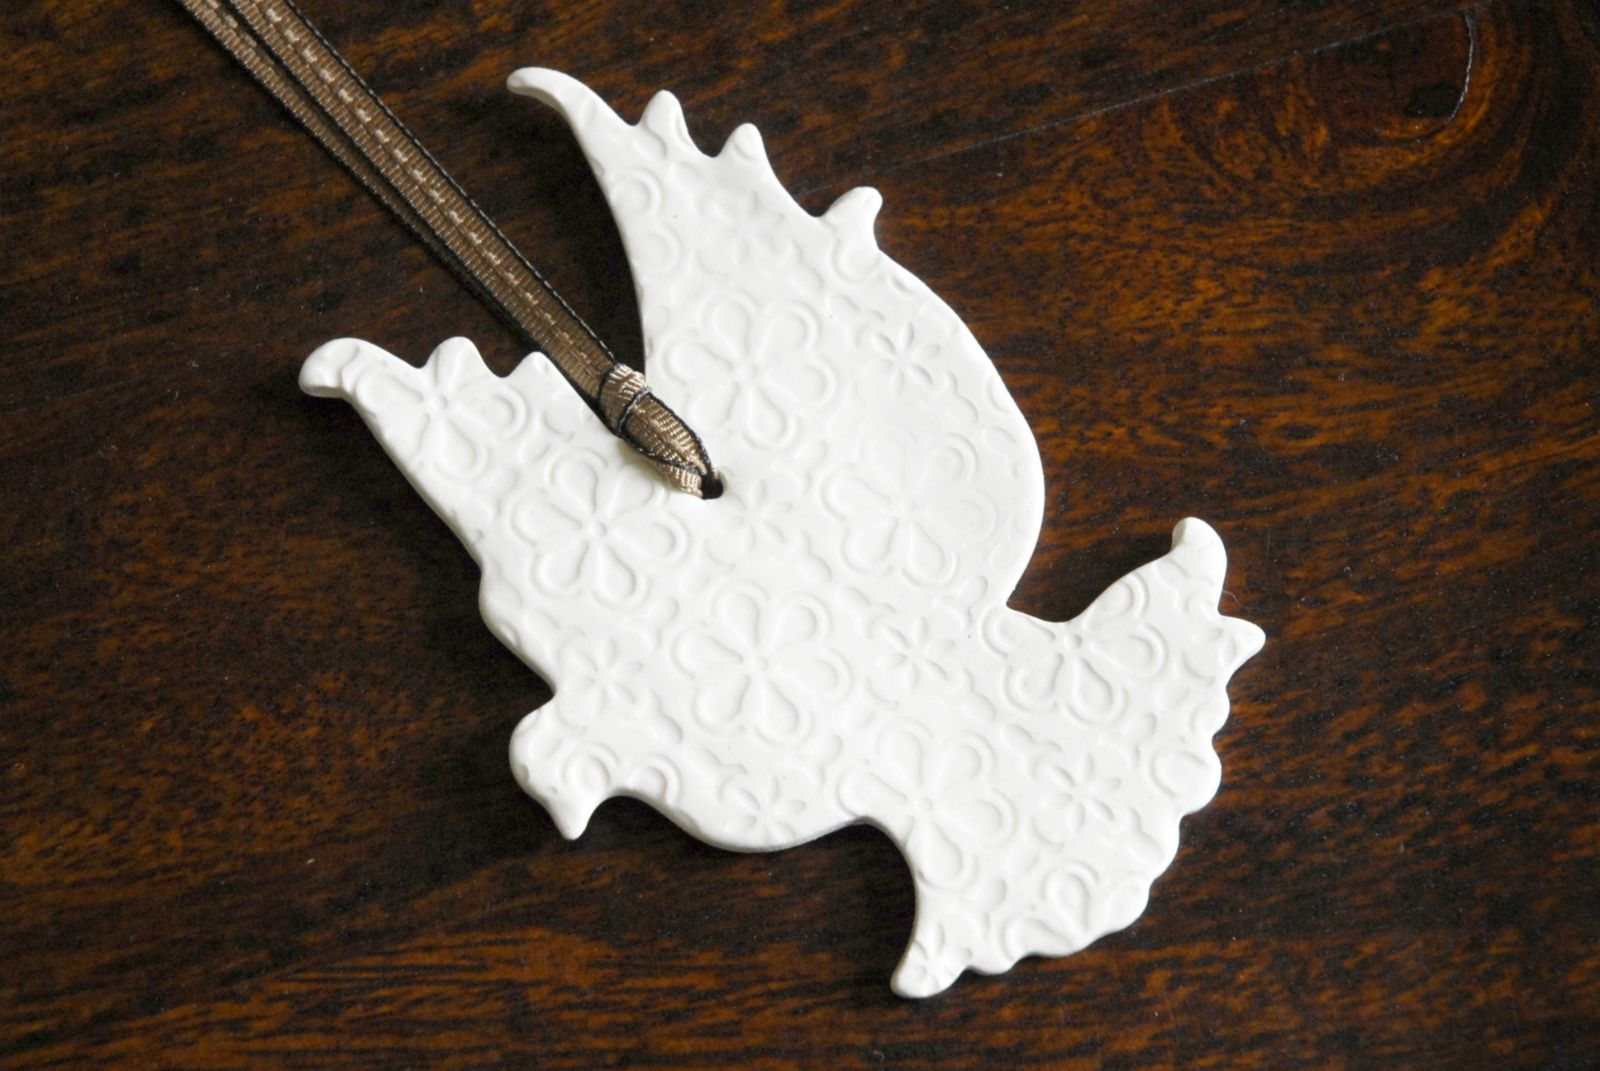 White dove ornament - Porcelain Christmas Ornaments Pair Of Ceramic White Dove Christmas Ornaments Felt